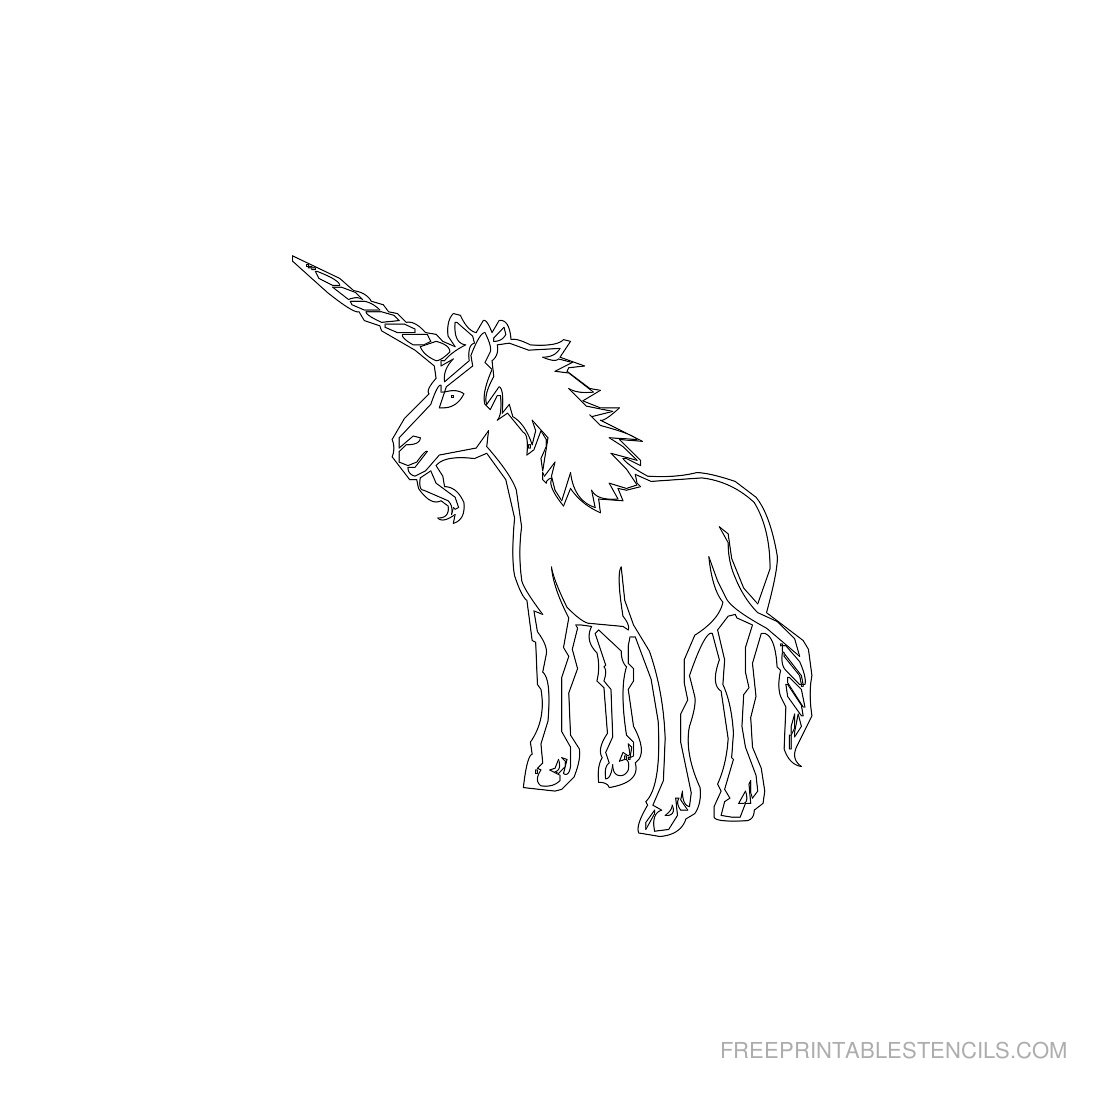 Free Printable Animal Stencil Unicorn